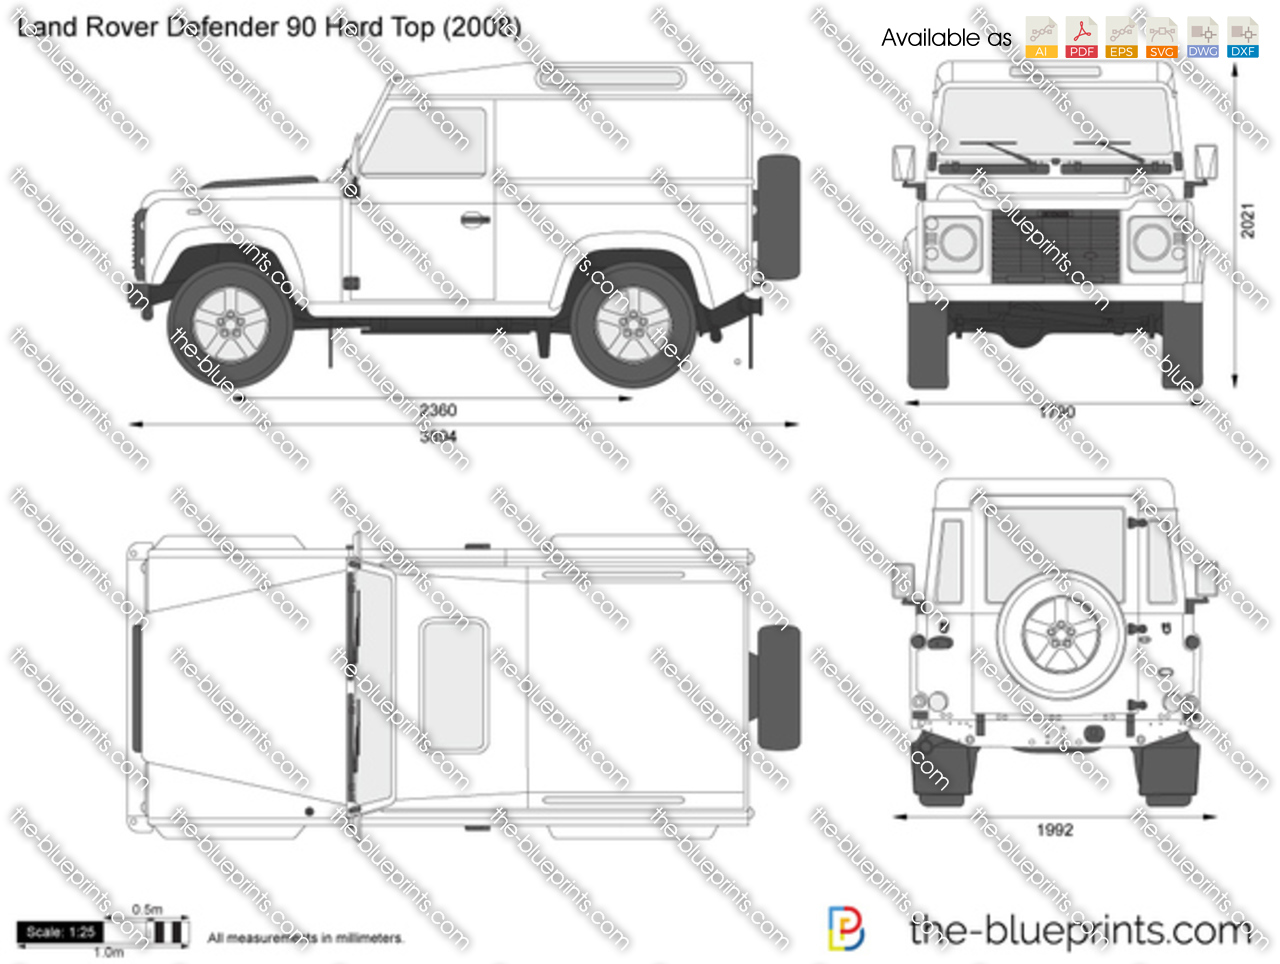 Land Rover Defender 90 Hard Top 1993